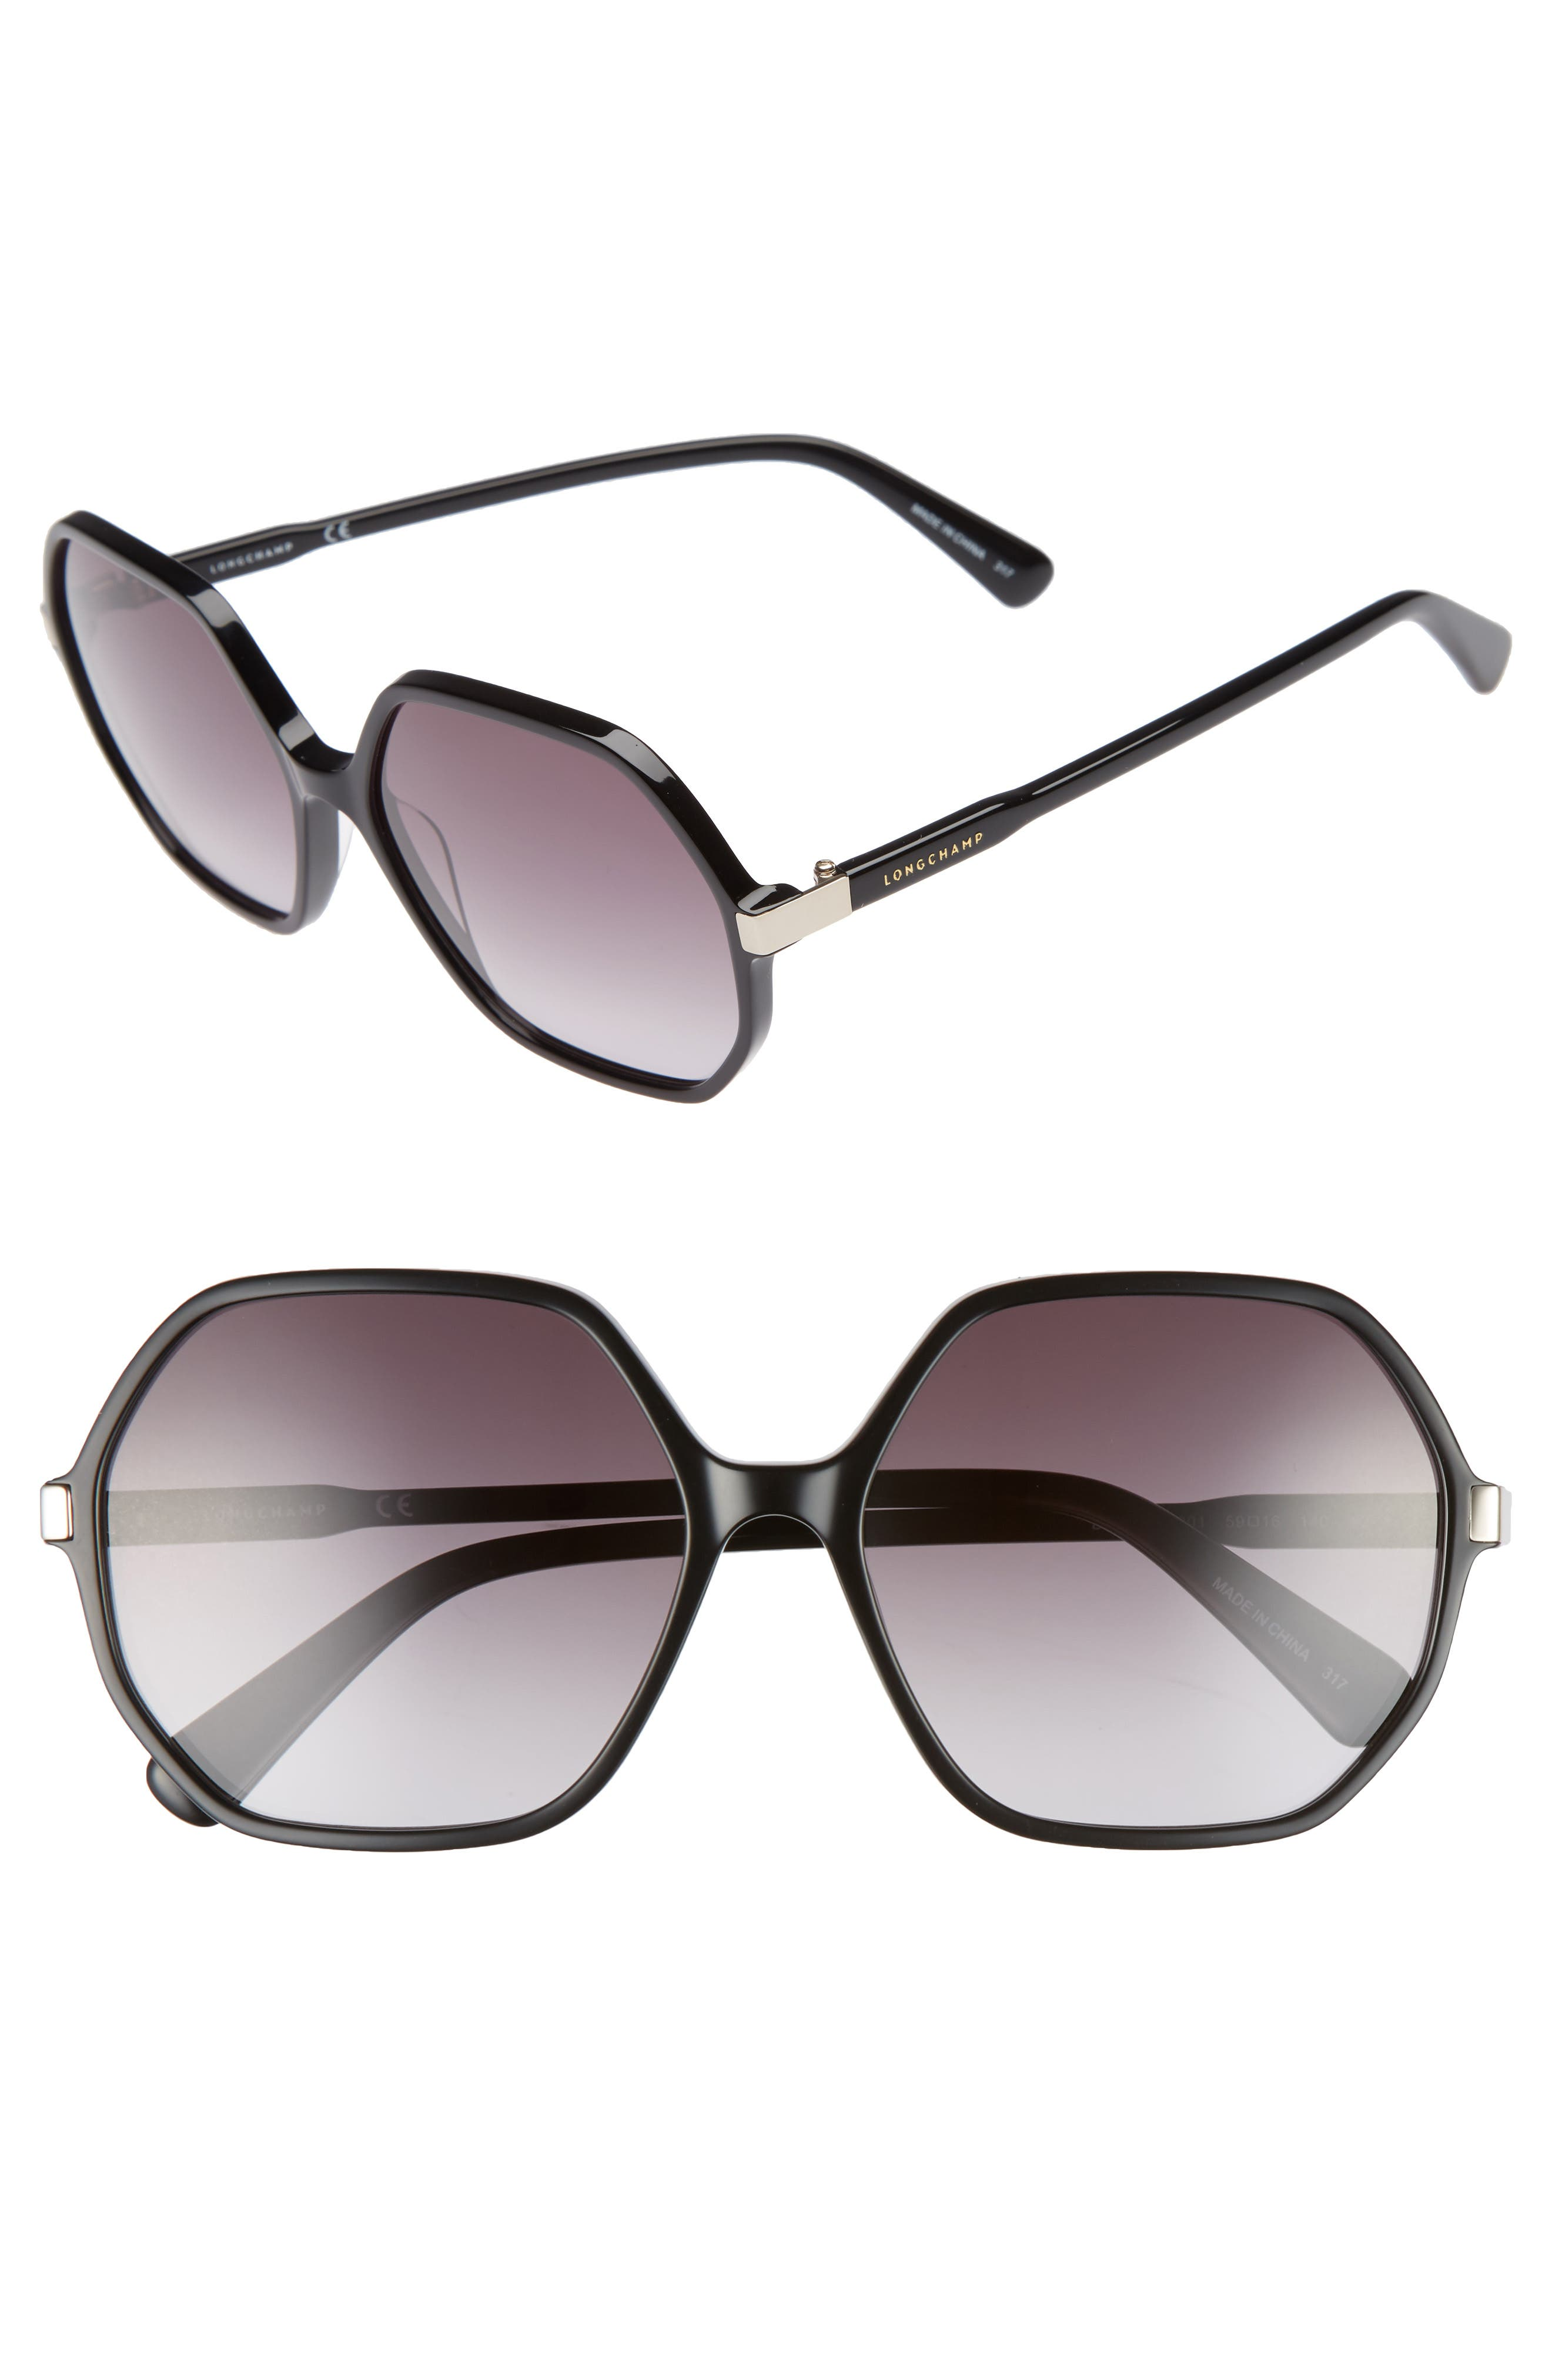 Longchamp 59mm Gradient Lens Hexagonal Sunglasses